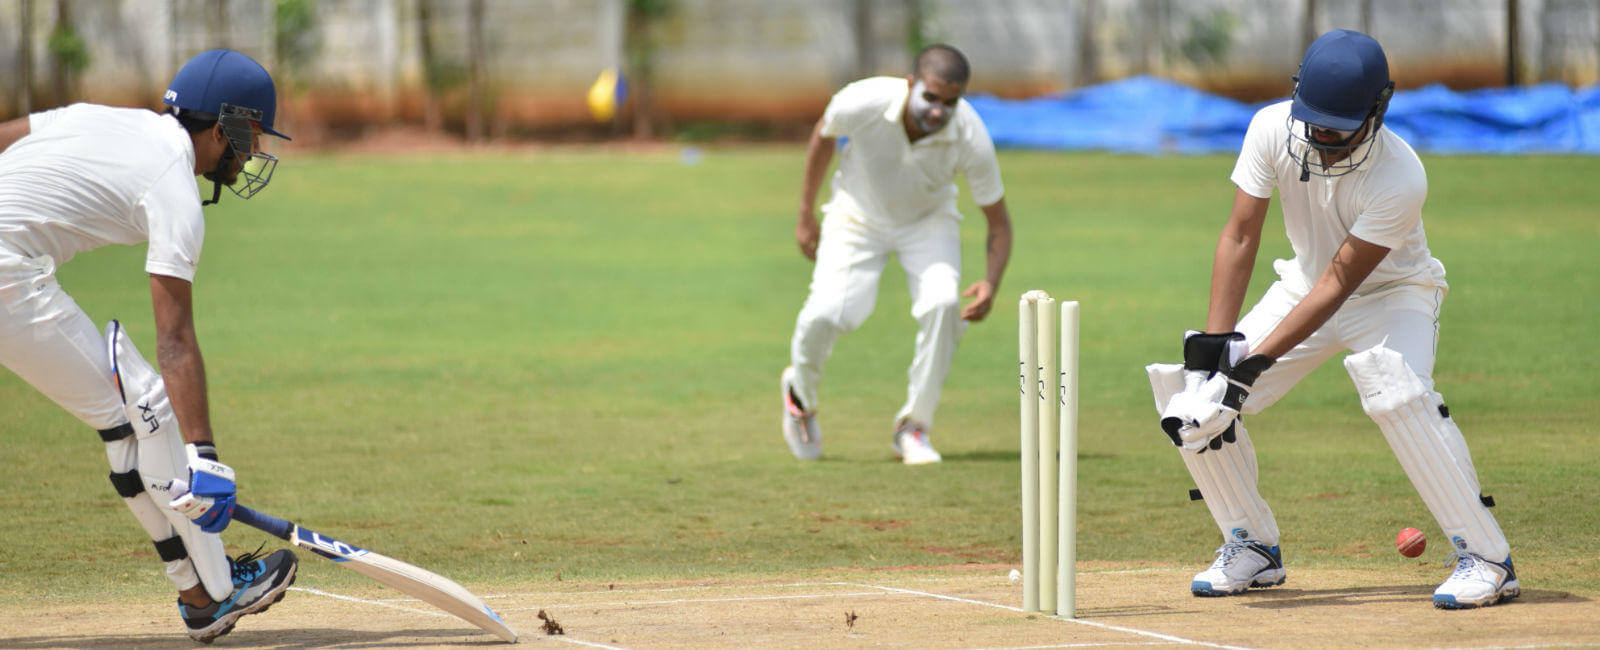 Cricket- Everything You Need to Know About This Sport